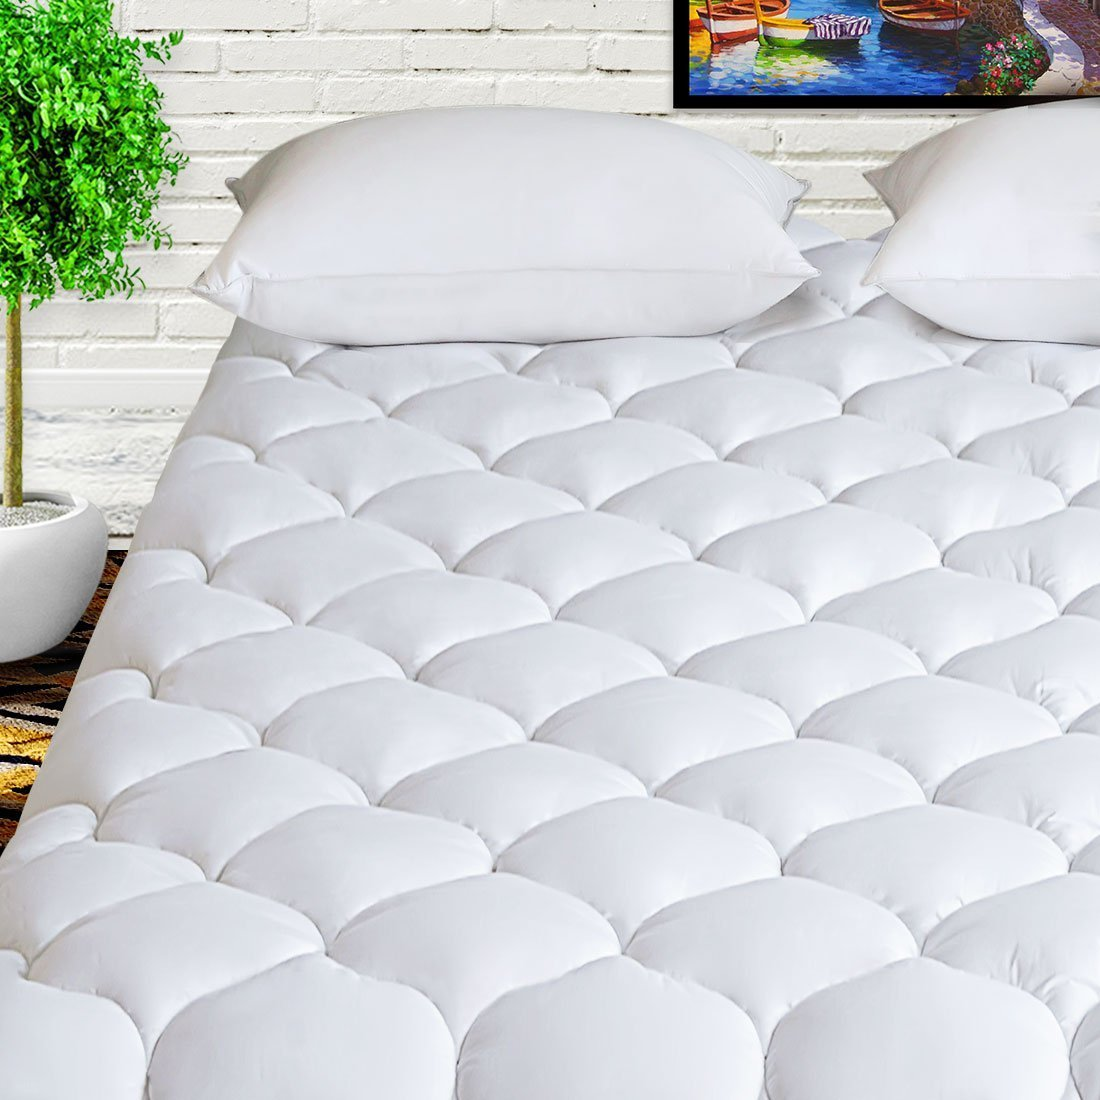 "HARNY Mattress Pad Cover Queen Size Summer Cooling Breathable Mattress Topper 400TC Cotton Top Quilted Pillowtop with 8-21""Deep Pocket"